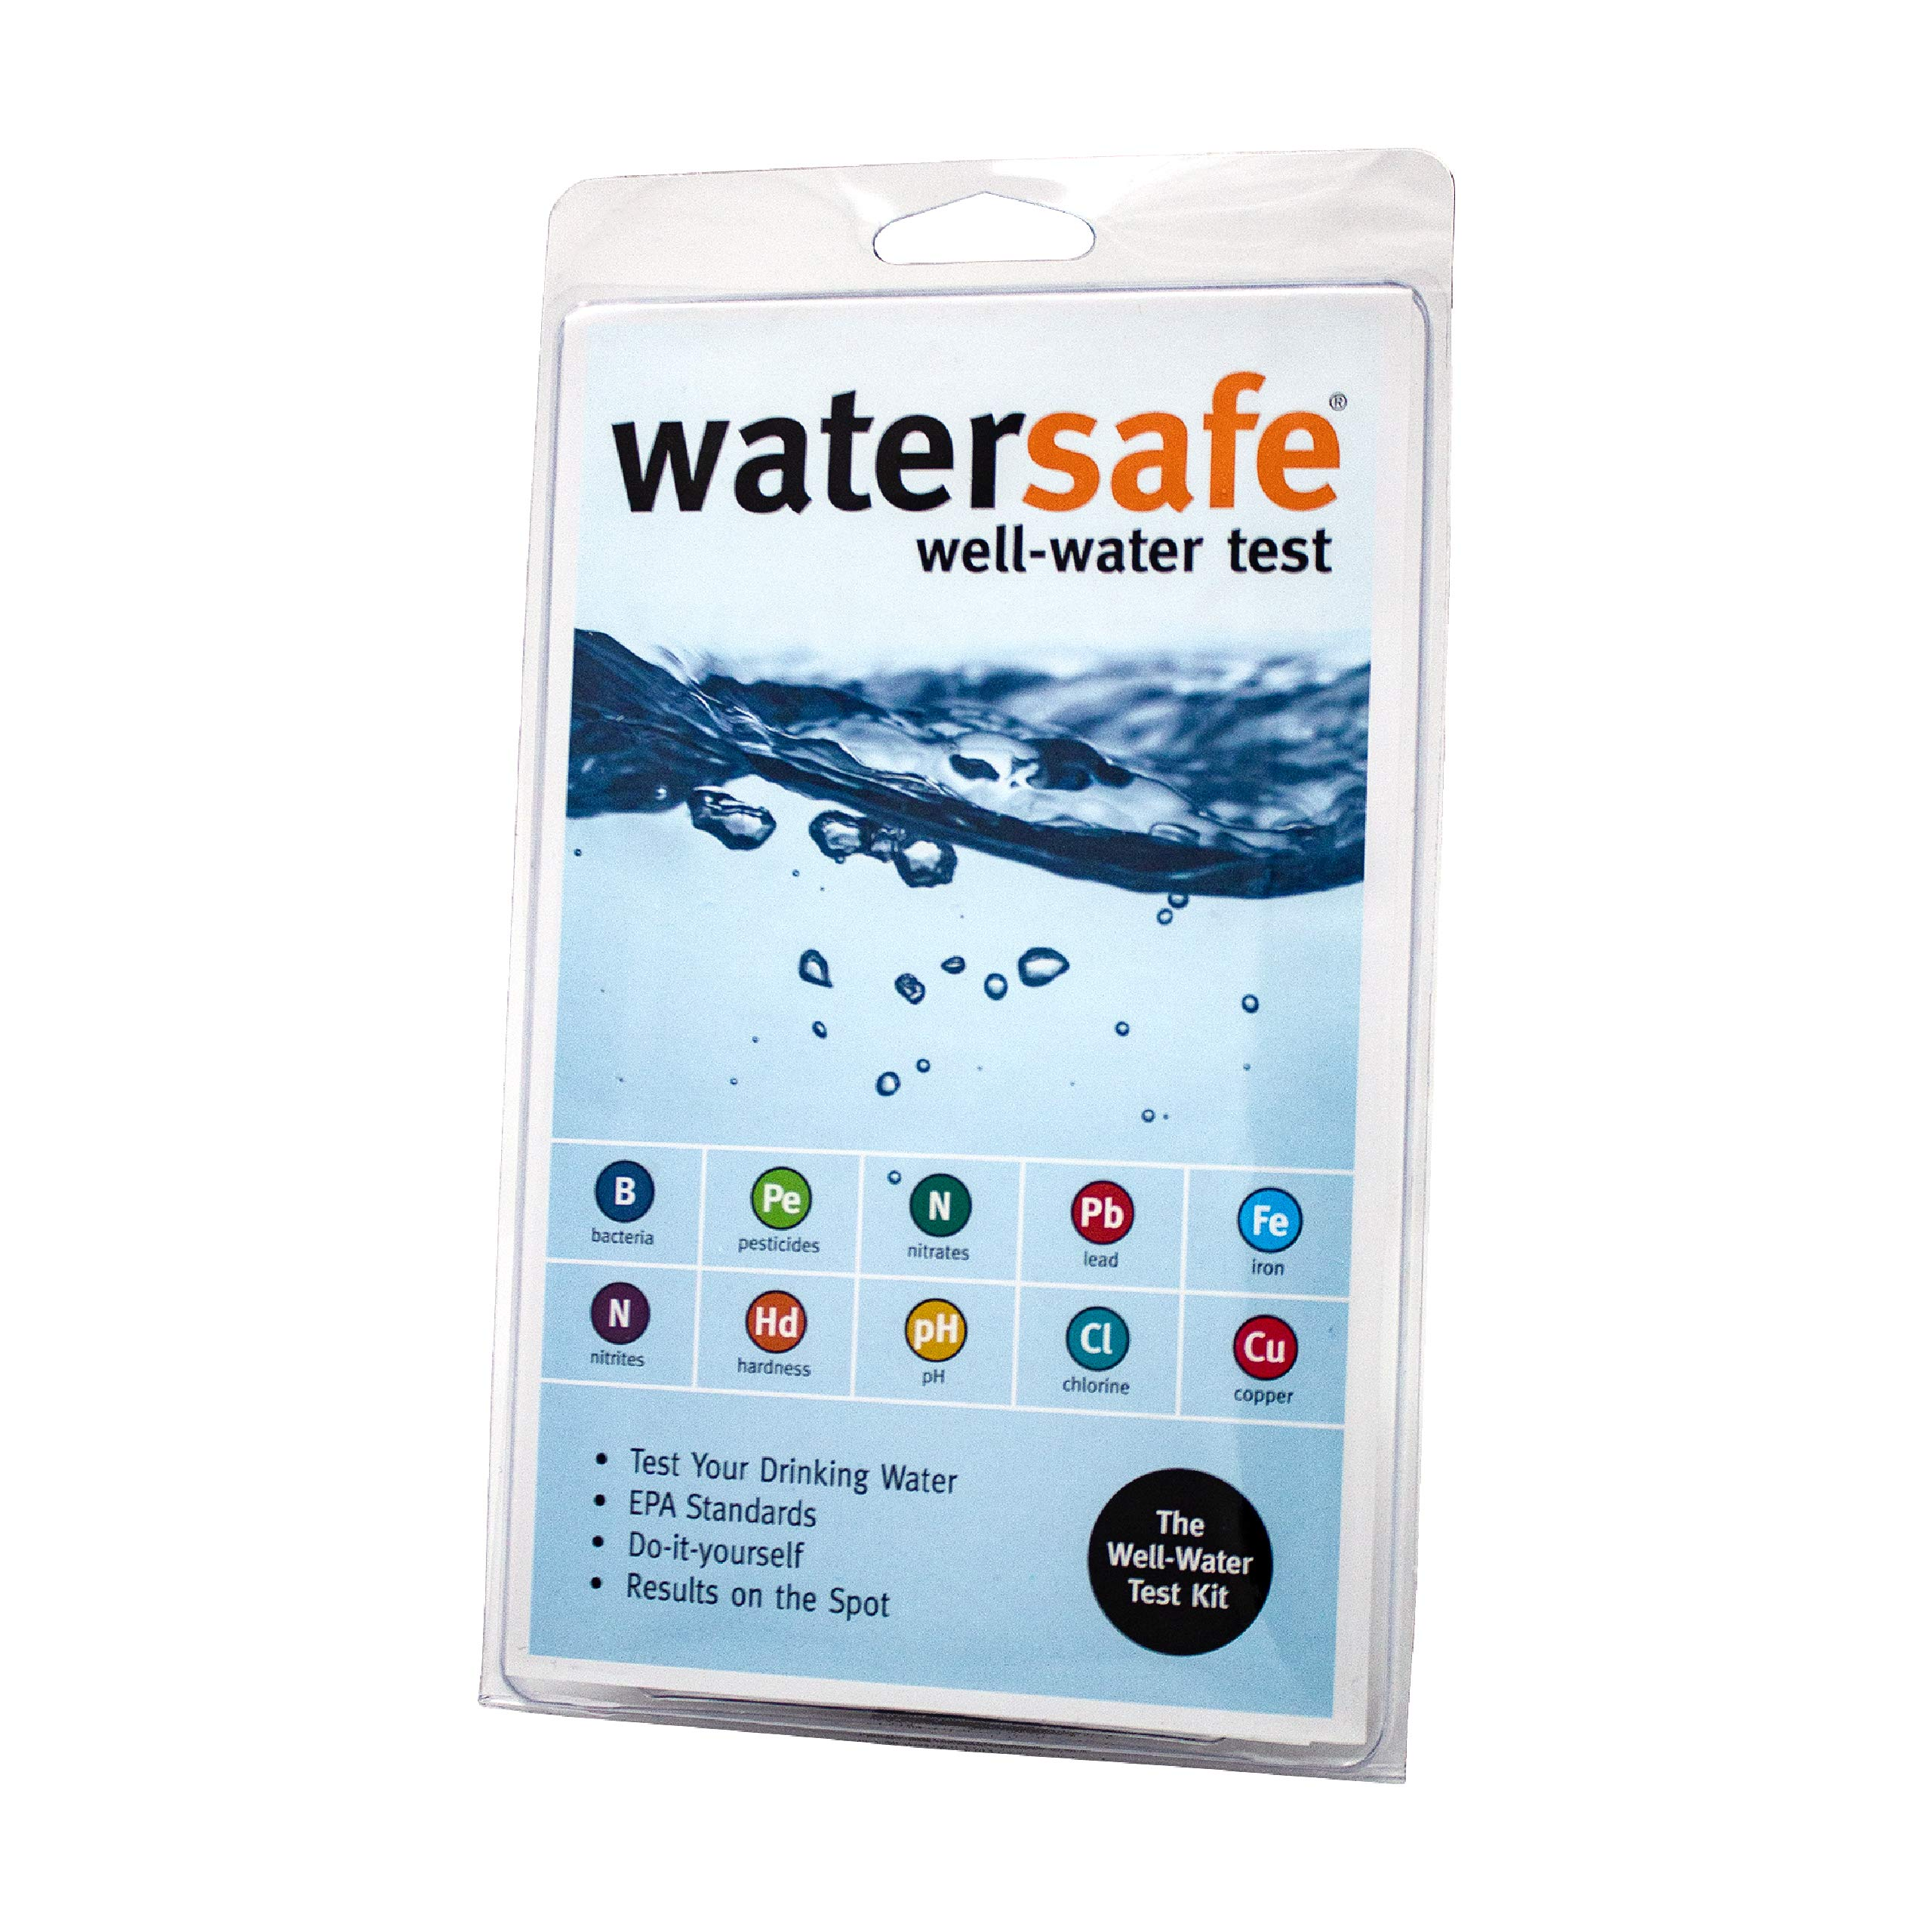 WaterSafe Well Water Test Kit - for Drinking Water in Home Tap and Well Water | Simple Testing Strips for Lead, Copper, Bacteria, Nitrate, Chlorine, and more | Made in the USA to EPA Standards by Watersafe